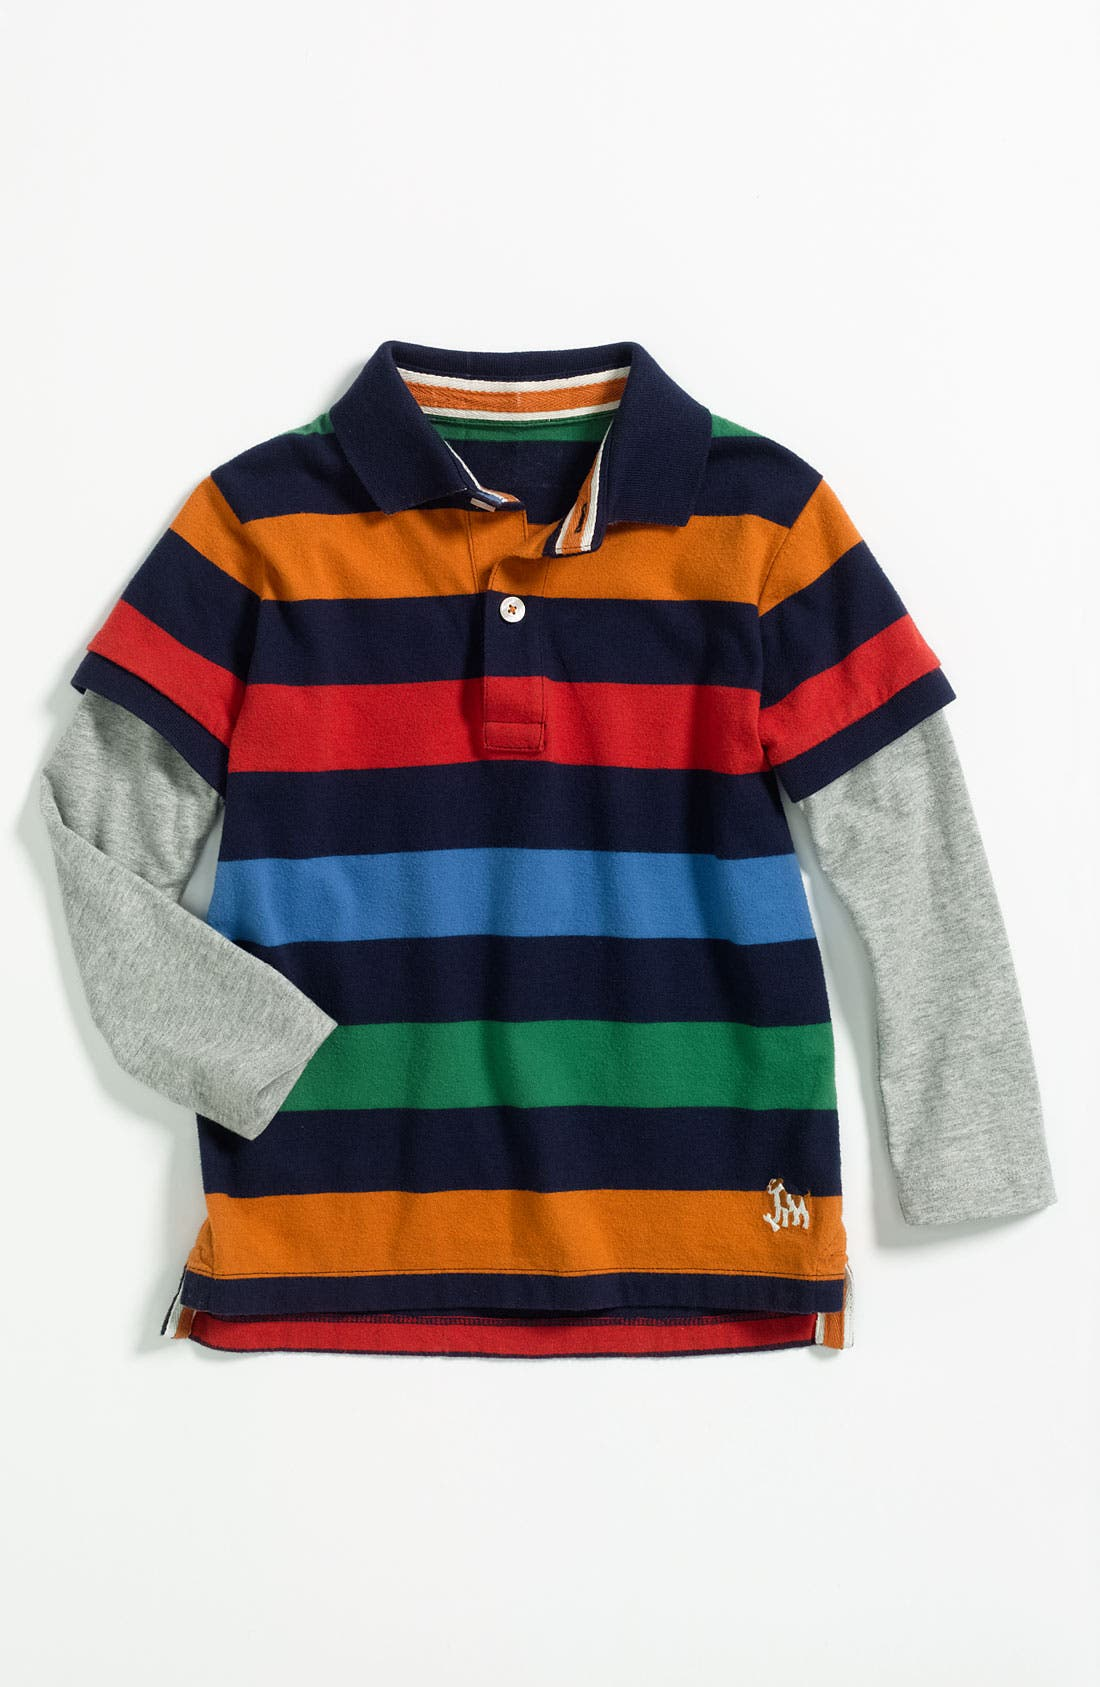 Main Image - Mini Boden Layered Sleeve Polo (Toddler)